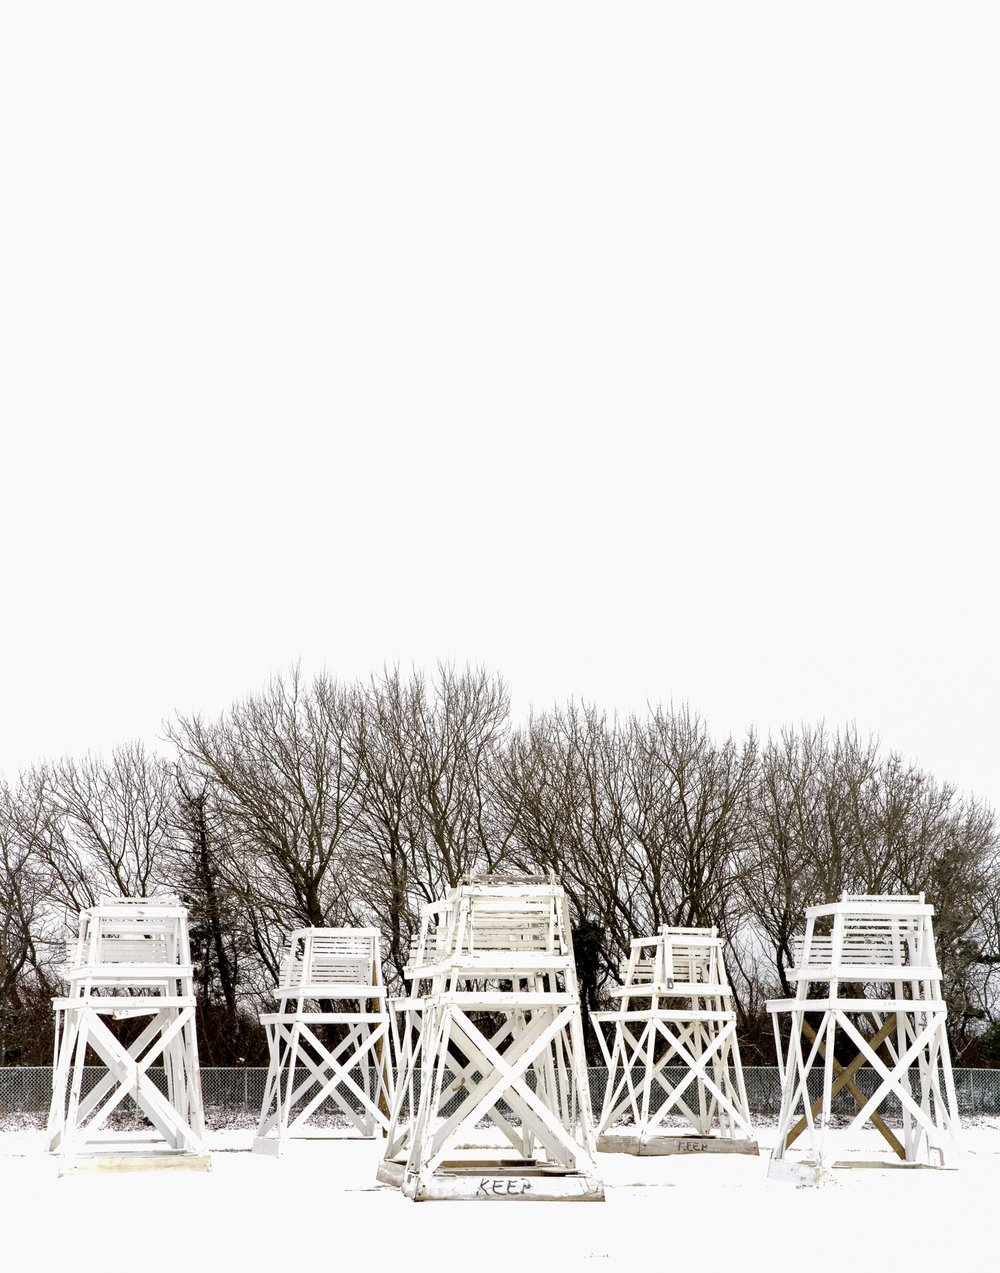 lifeguard chairs, Jones Beach, NY